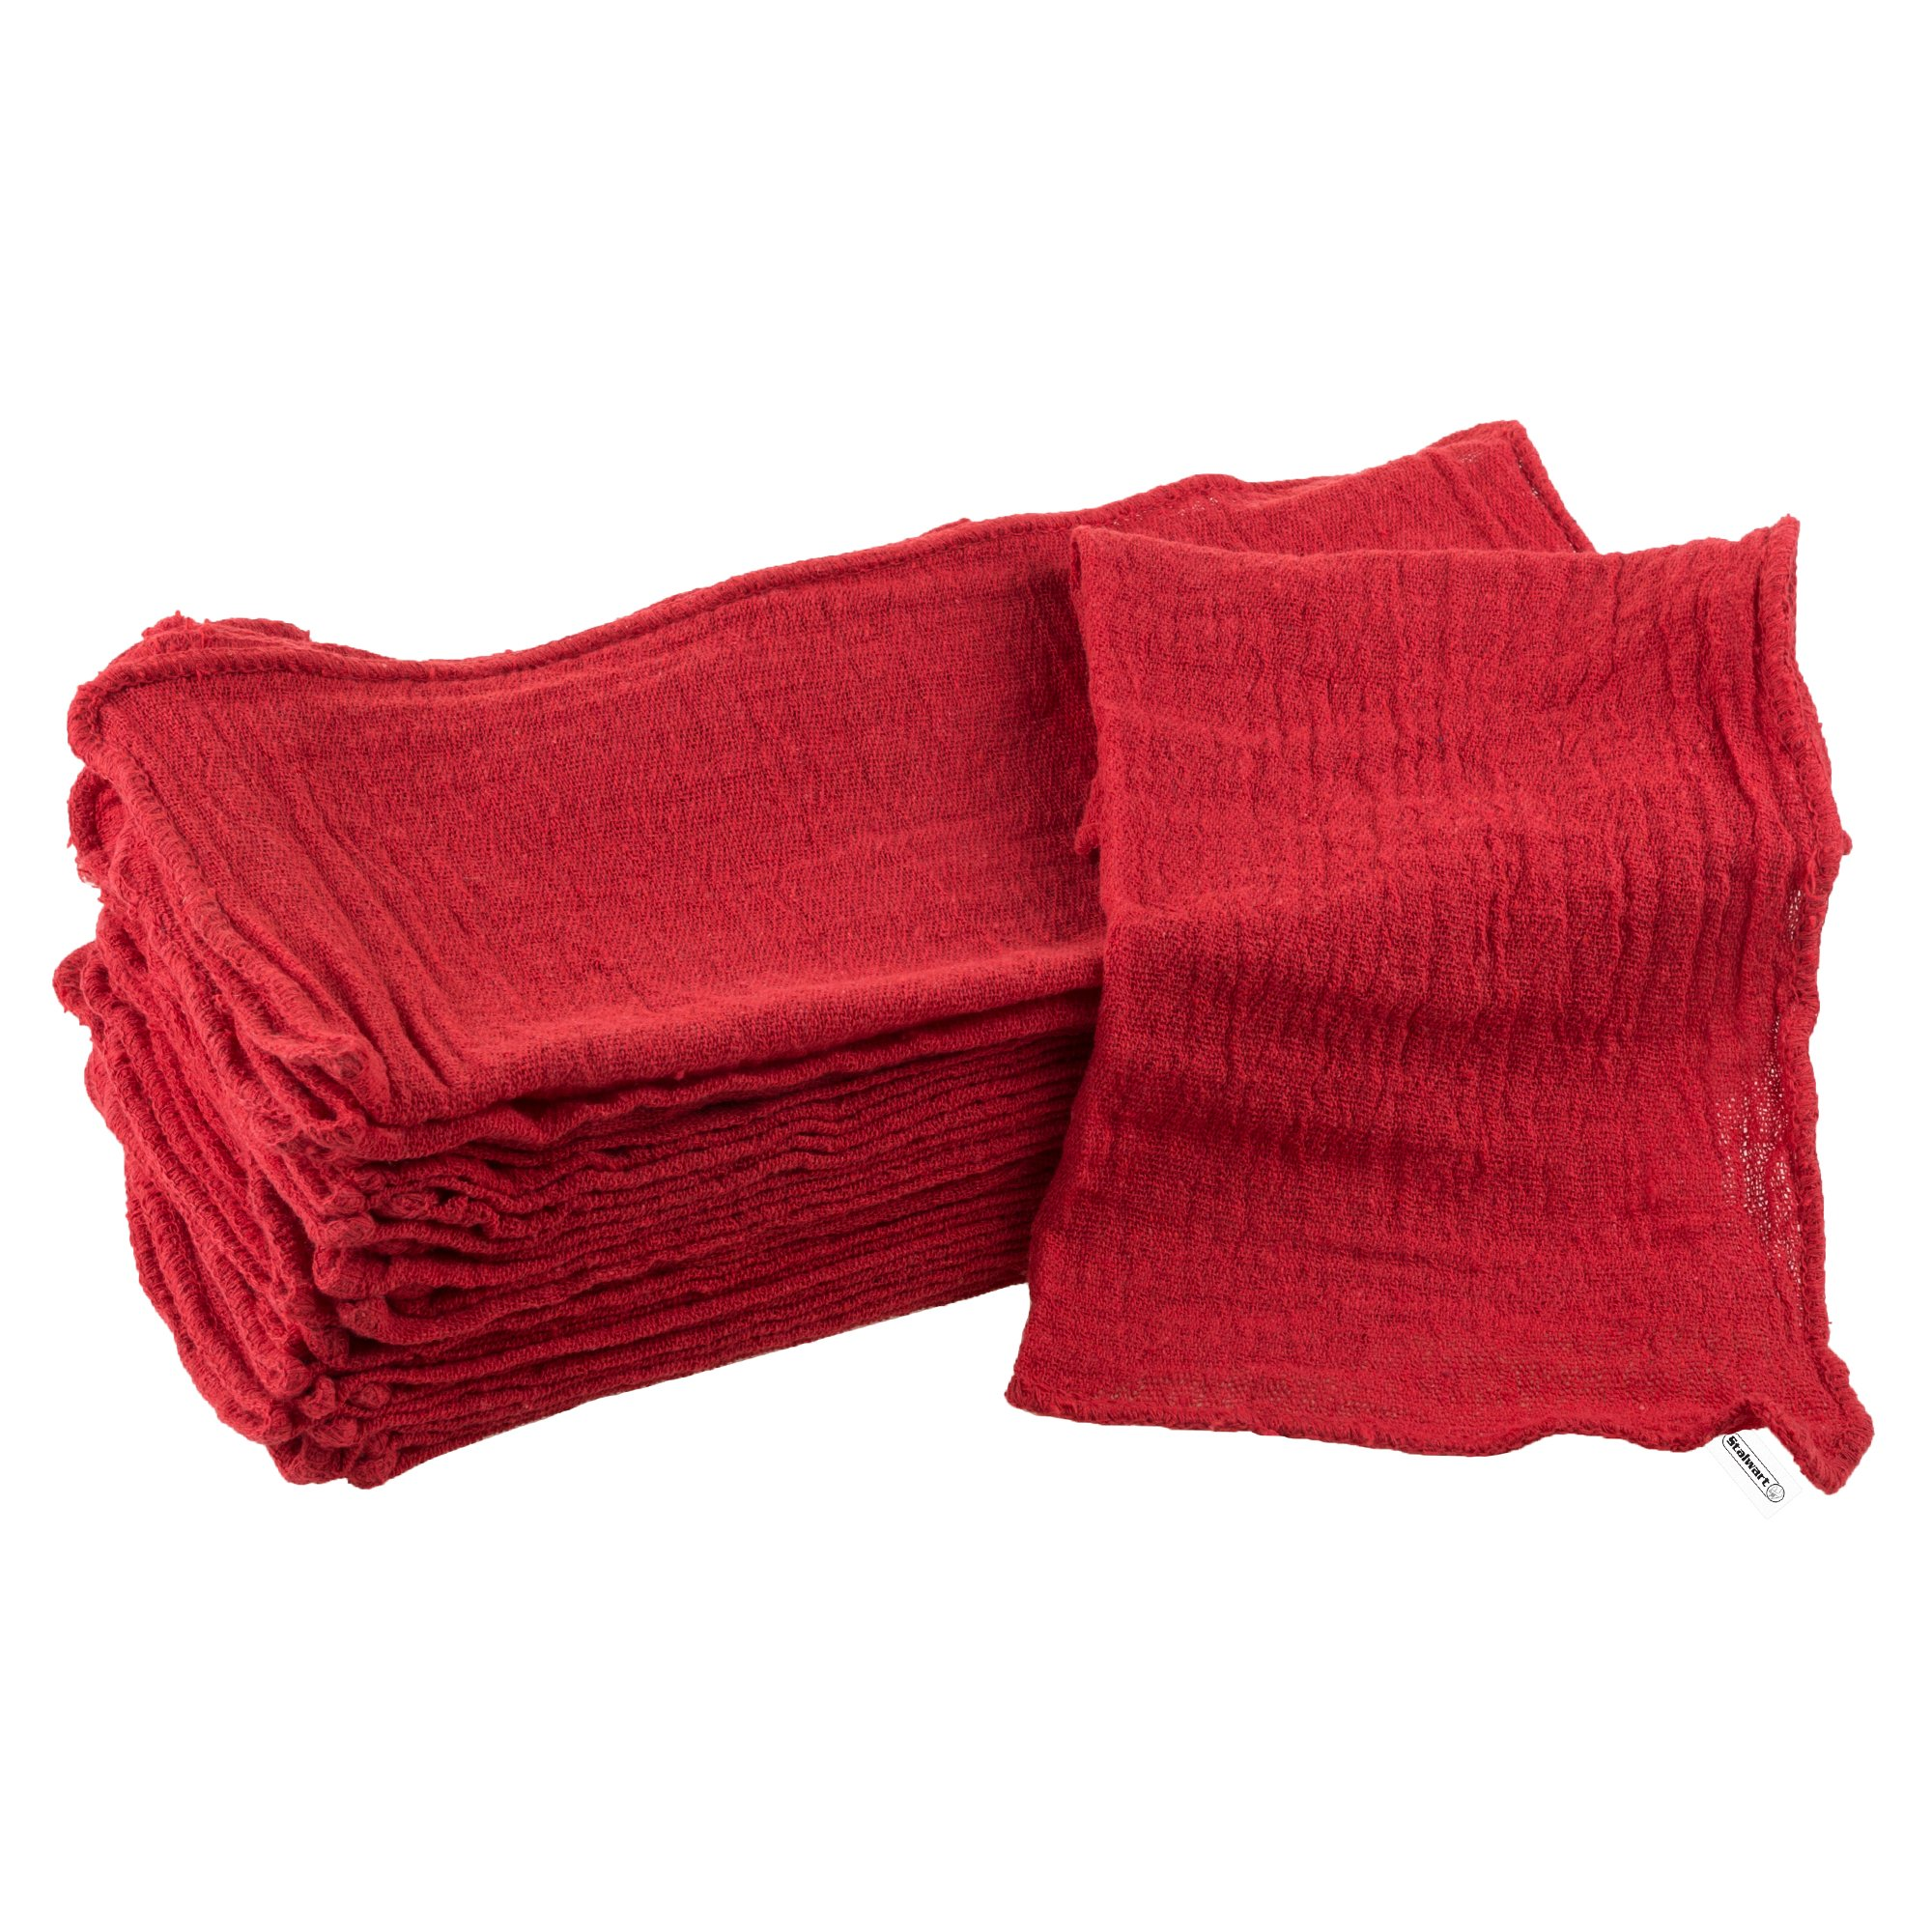 Stalwart Auto Shop Towels, 100% Cotton Rags Absorbent for Auto Shops, Mechanics, Car Wash, Garage and Home Cleaning Supplies- 25 Pack, By (Red)